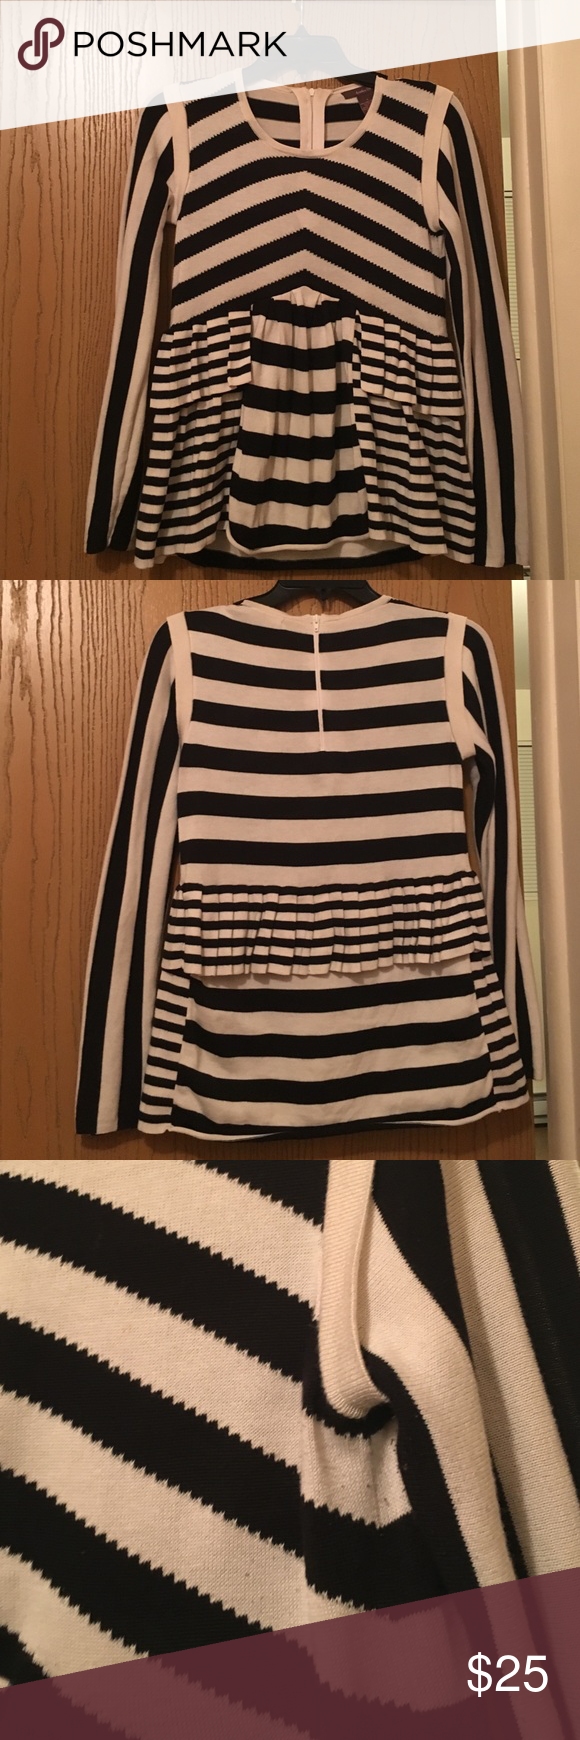 Super Cute pleated, chevron pattern Peplum sweater 💯 % cotton, black and off white, gently used- lots of life left, gorgeous pattern in great condition! Heather B brand by Anthropologie Sweaters Crew & Scoop Necks